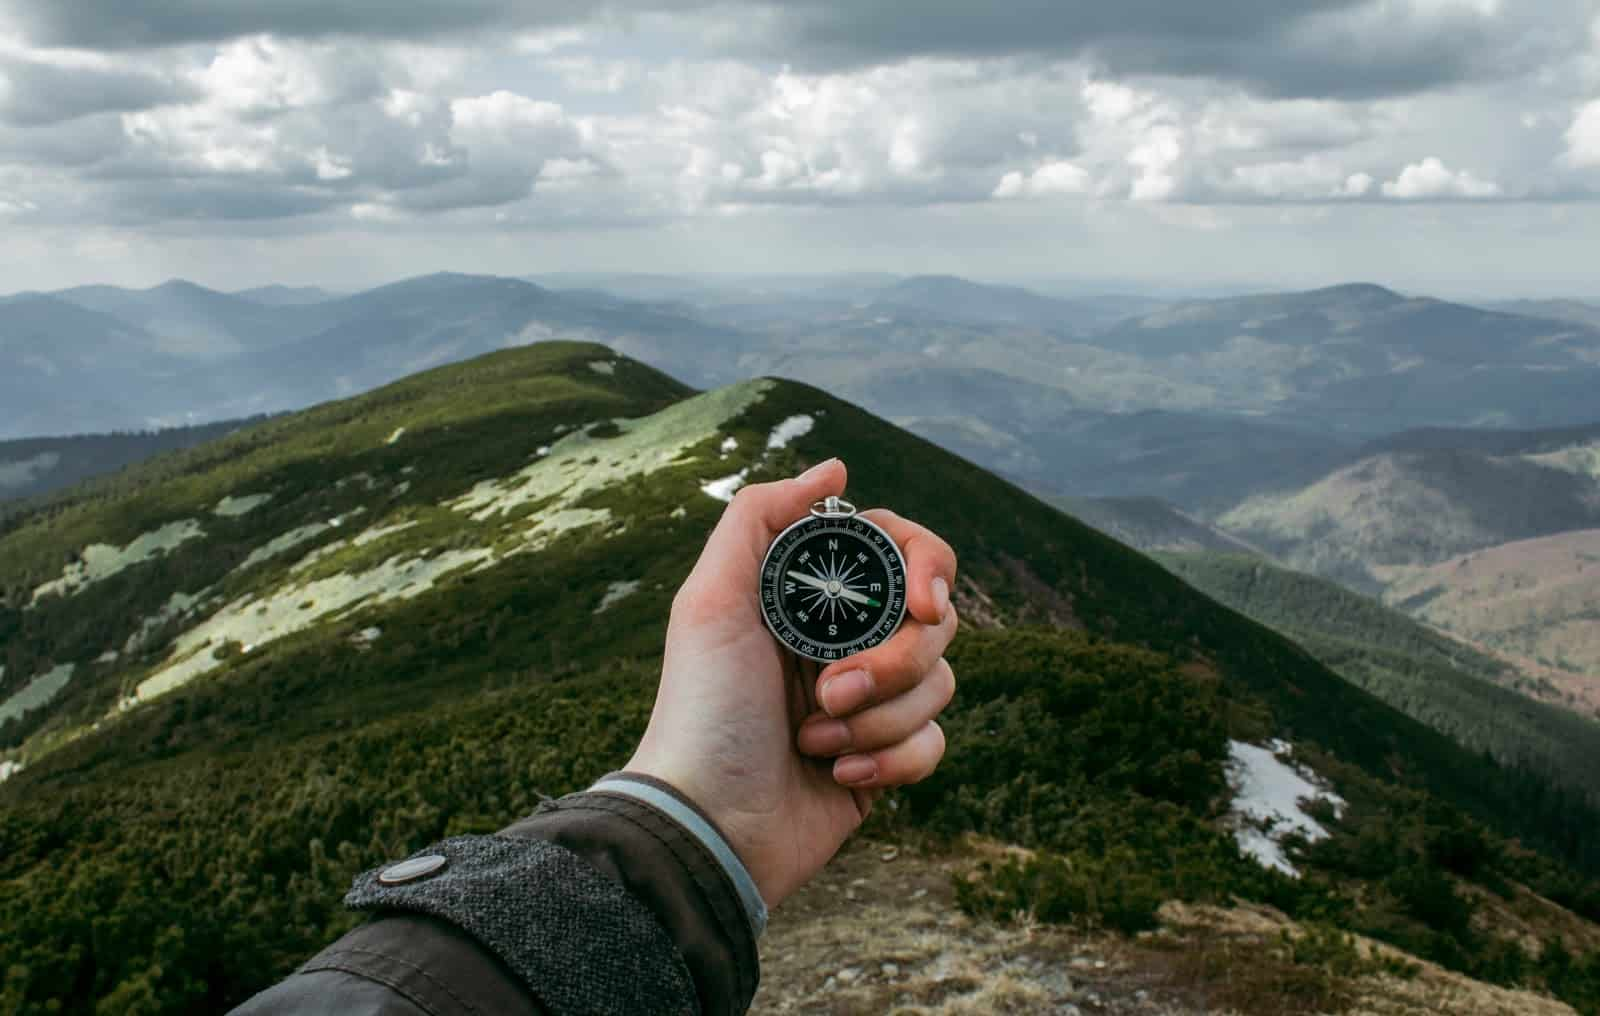 goal-setting - compass and nature